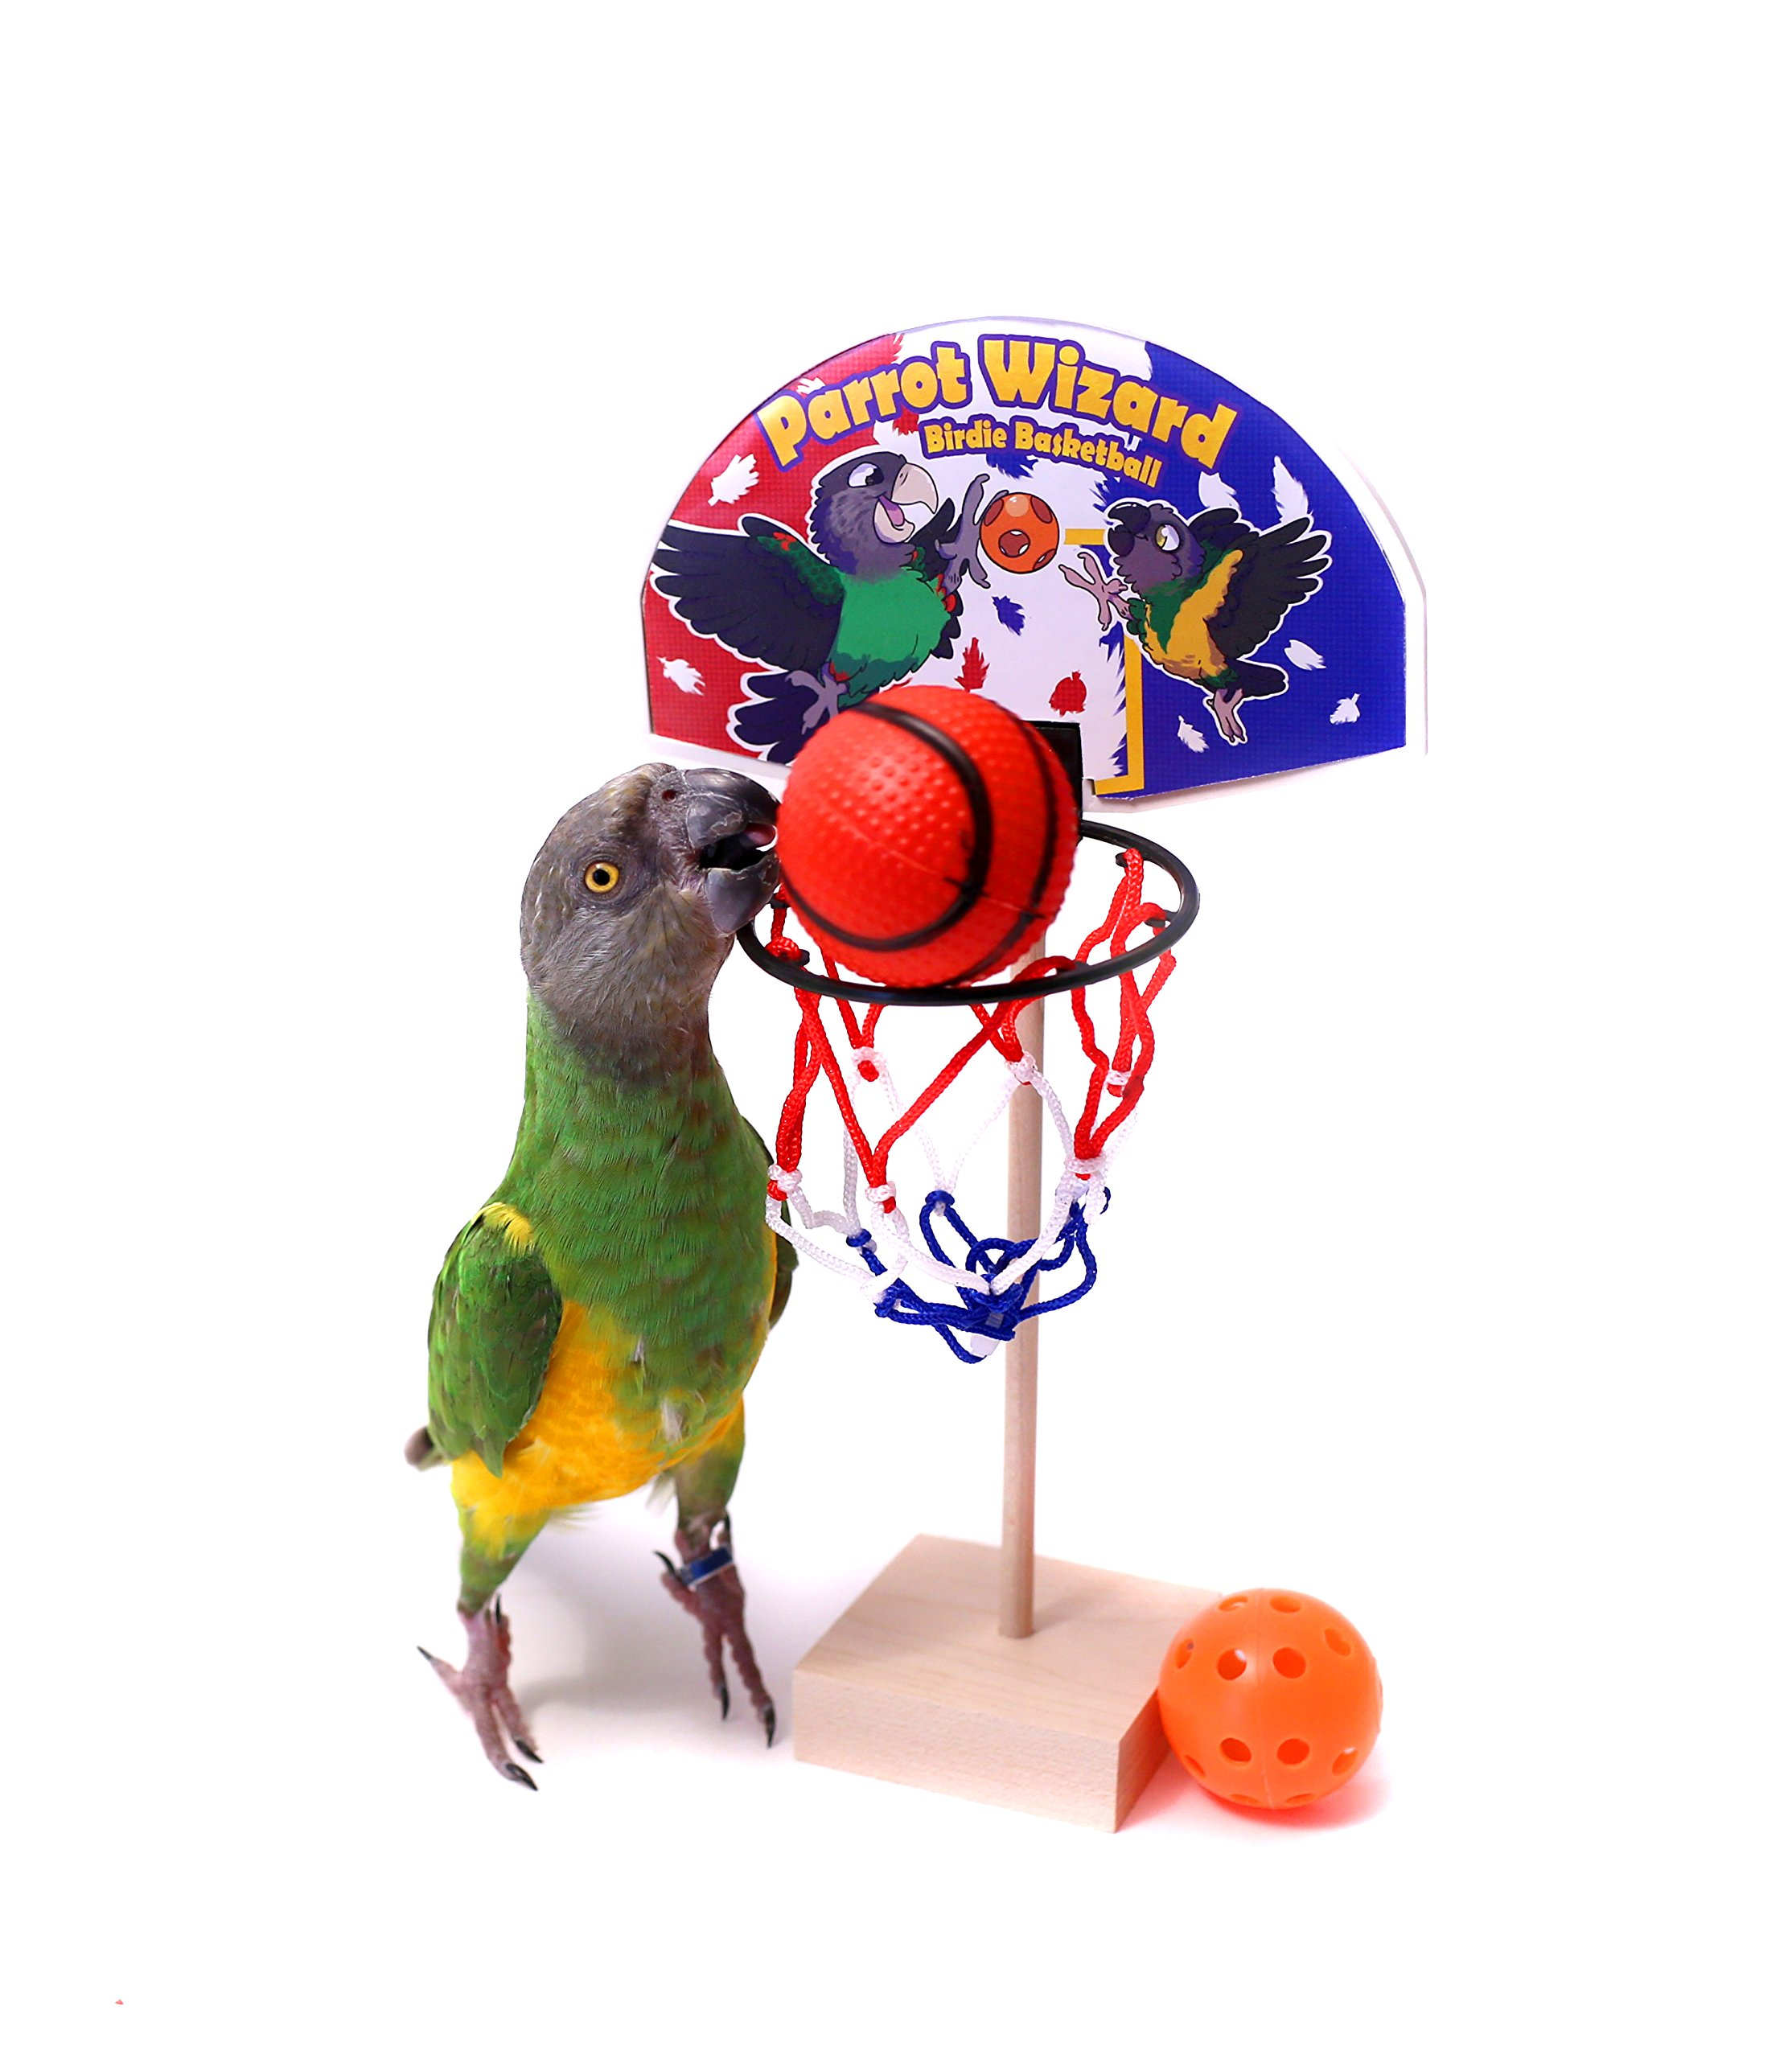 Birdie Basketball - Adjustable Height Parrot Basketball Trick Prop by Parrot Wizard